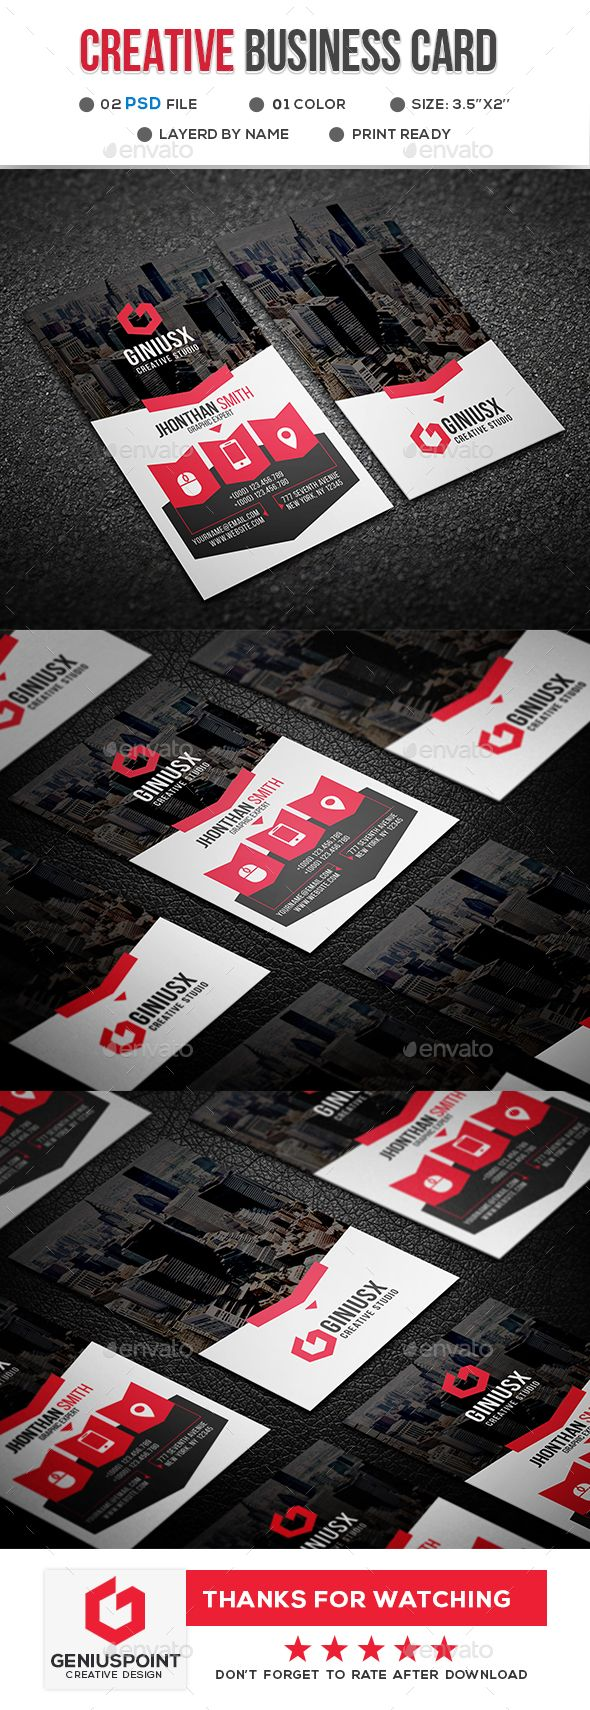 Creative Business Card - Creative Business Cards #graphicdesign #businesscards